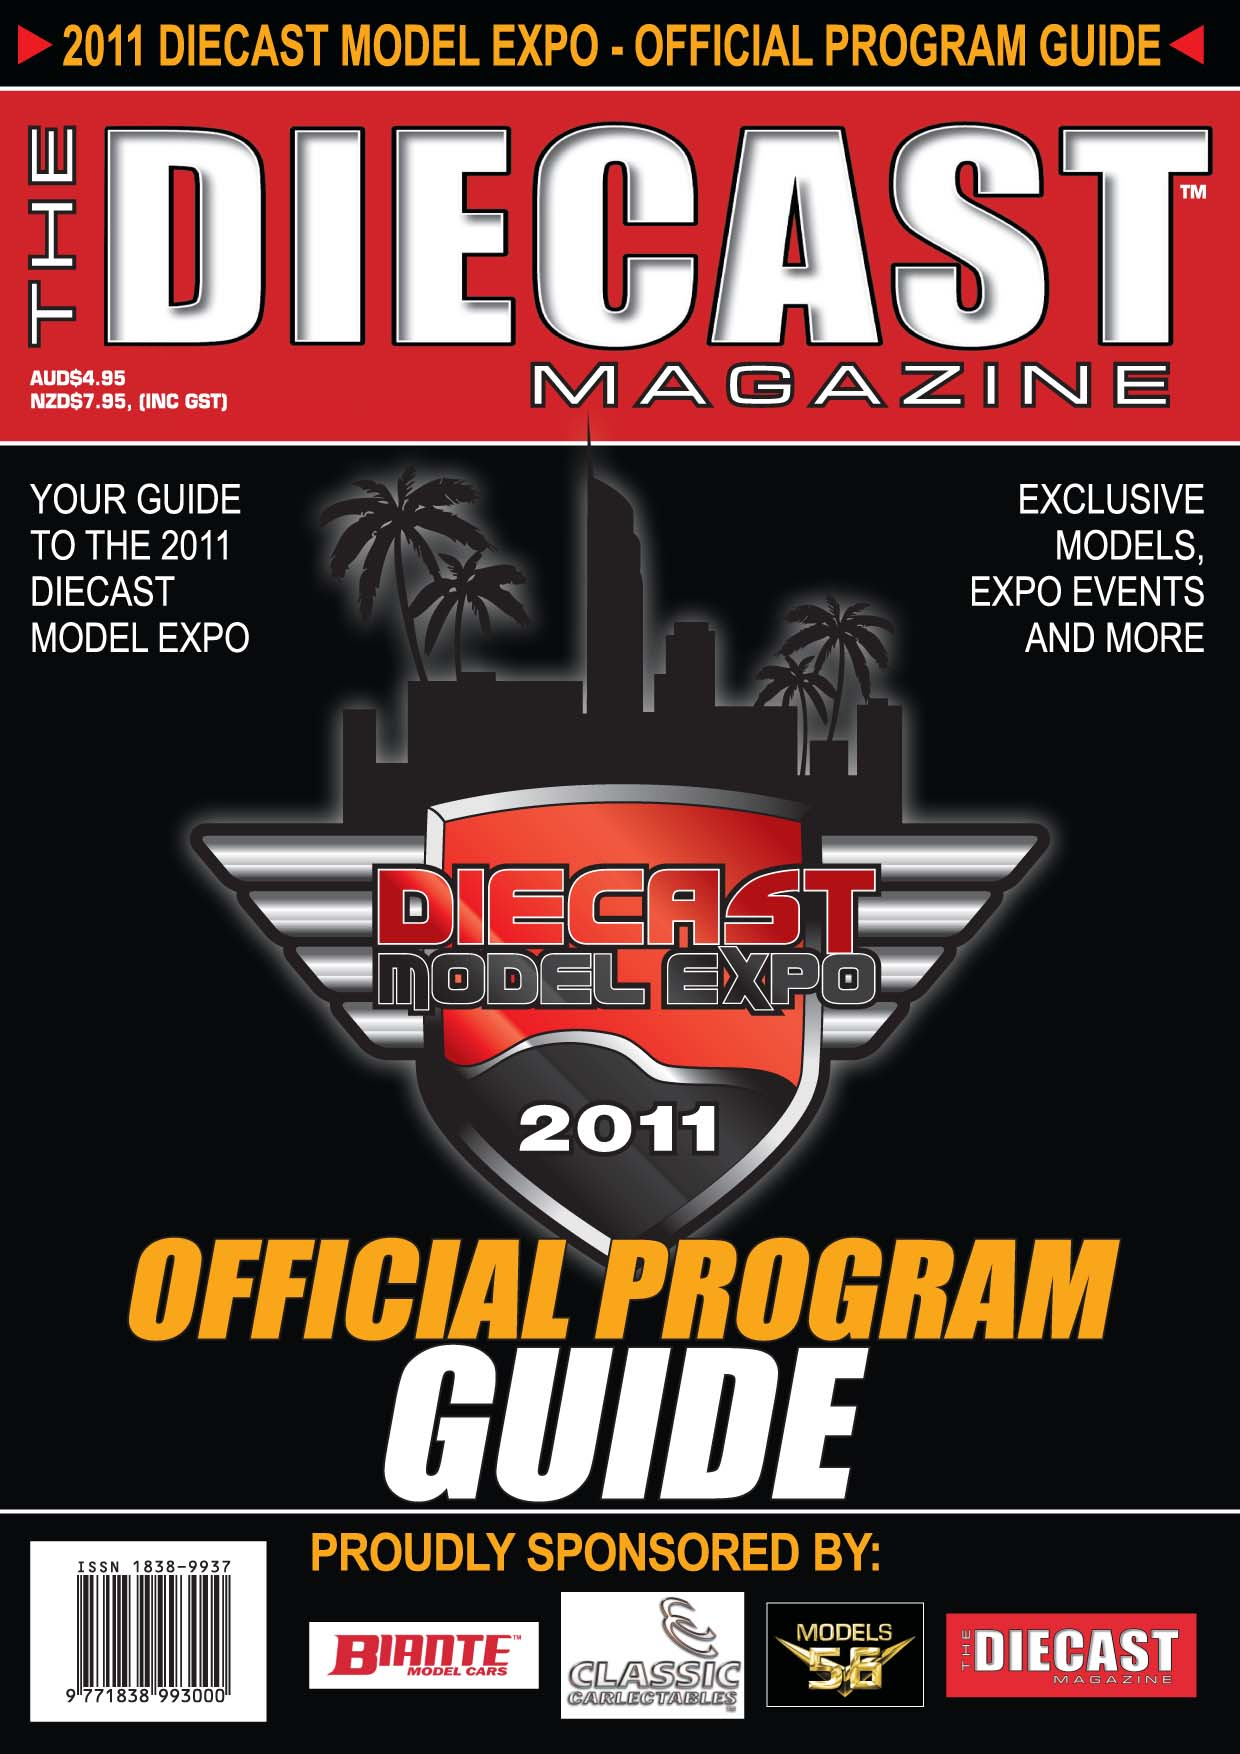 2011 Diecast Model Expo Program Guide